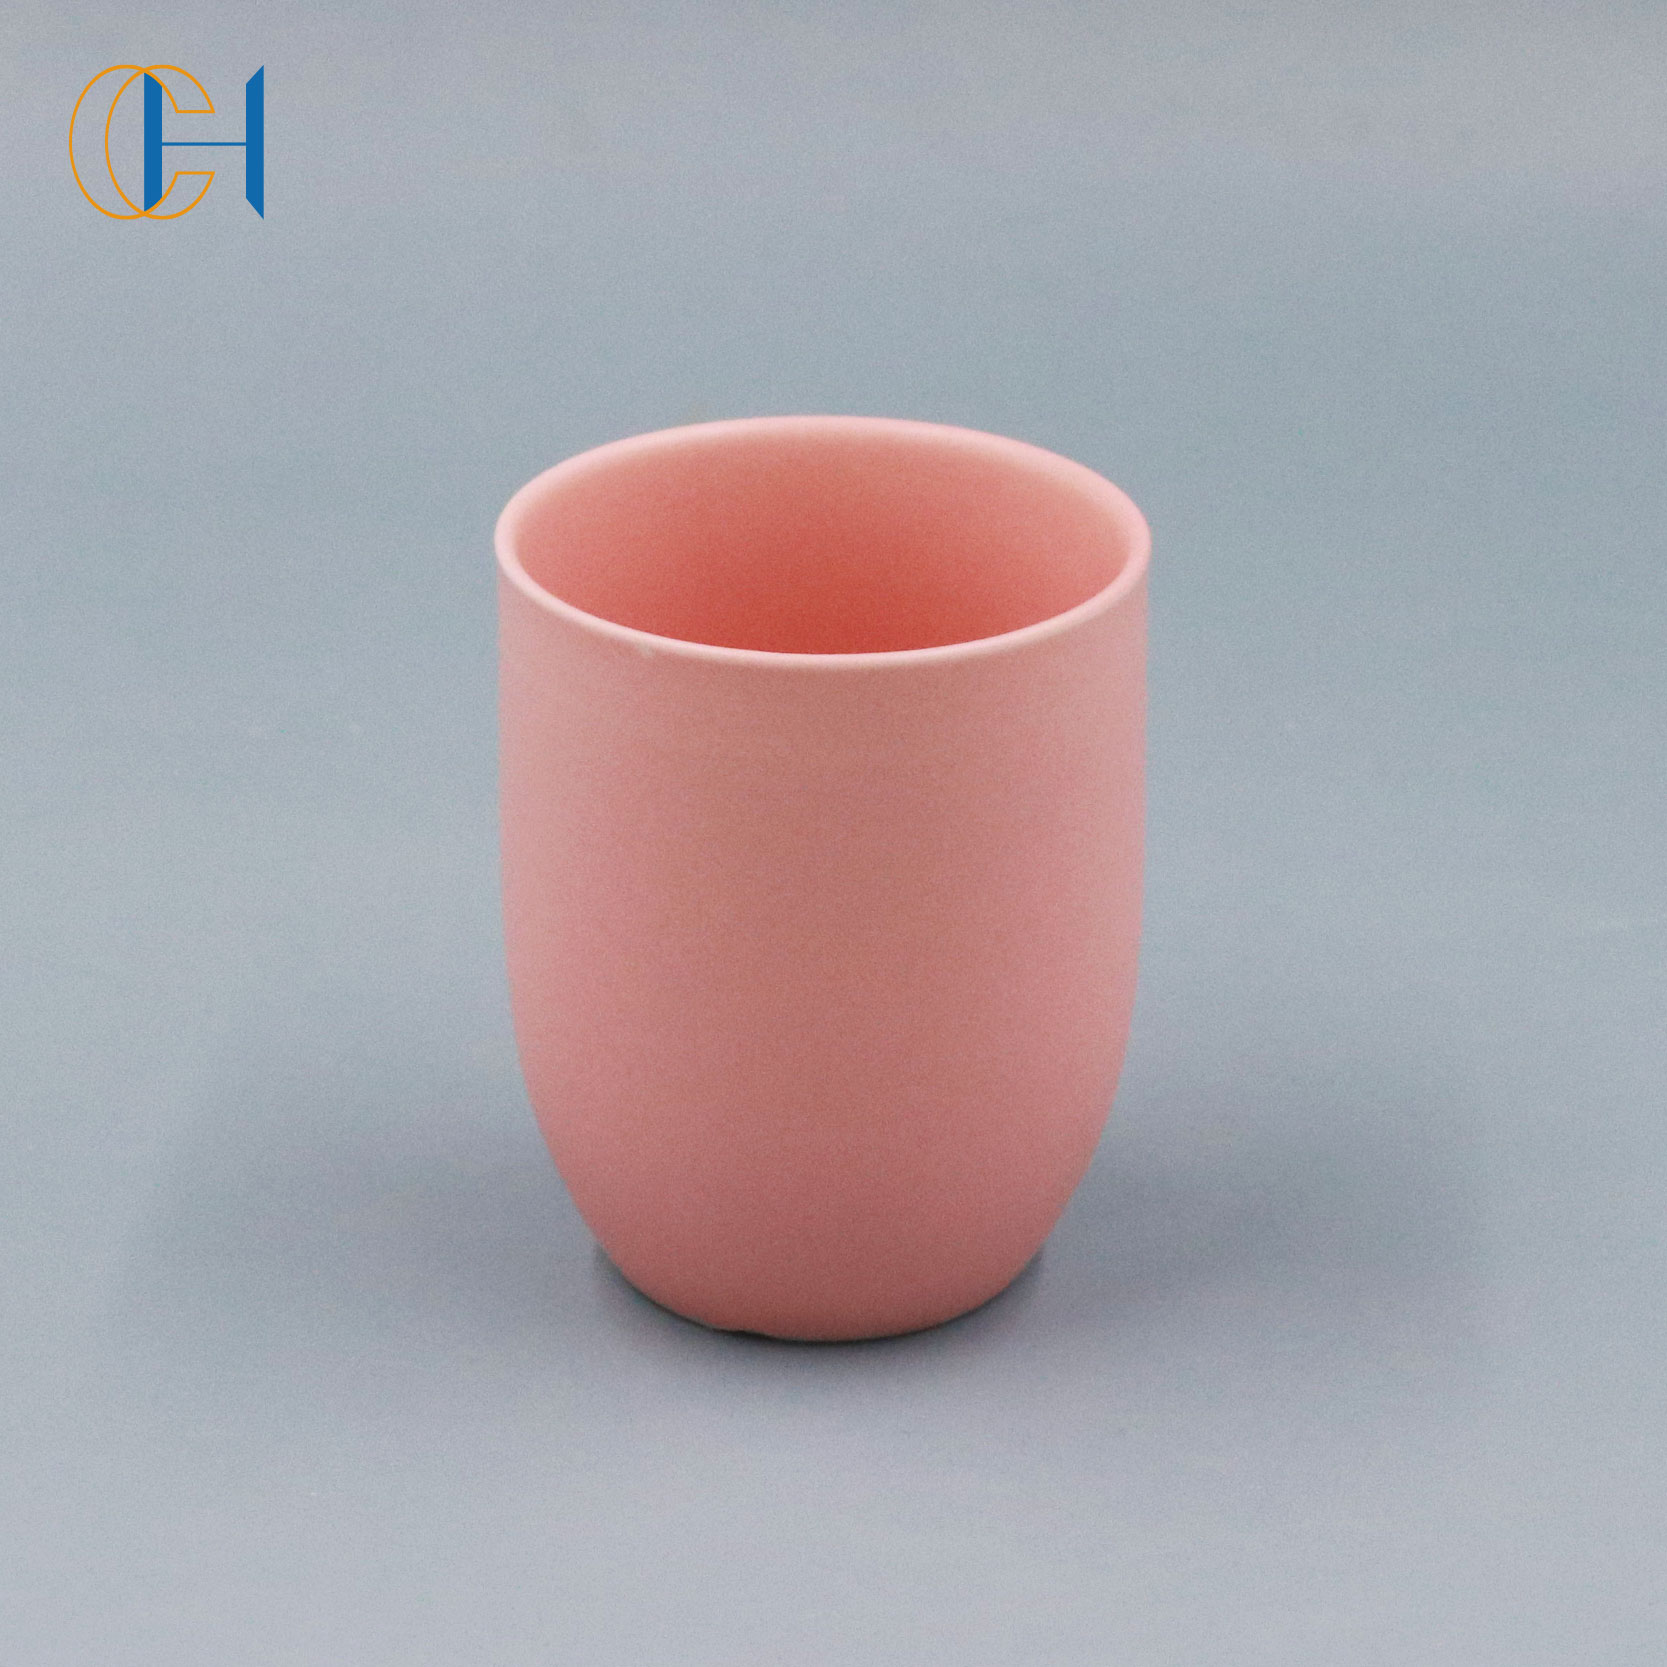 Minimalism style home decoration table decor handcrafted Charisma Gift Luxury ceramic candle jar with lid